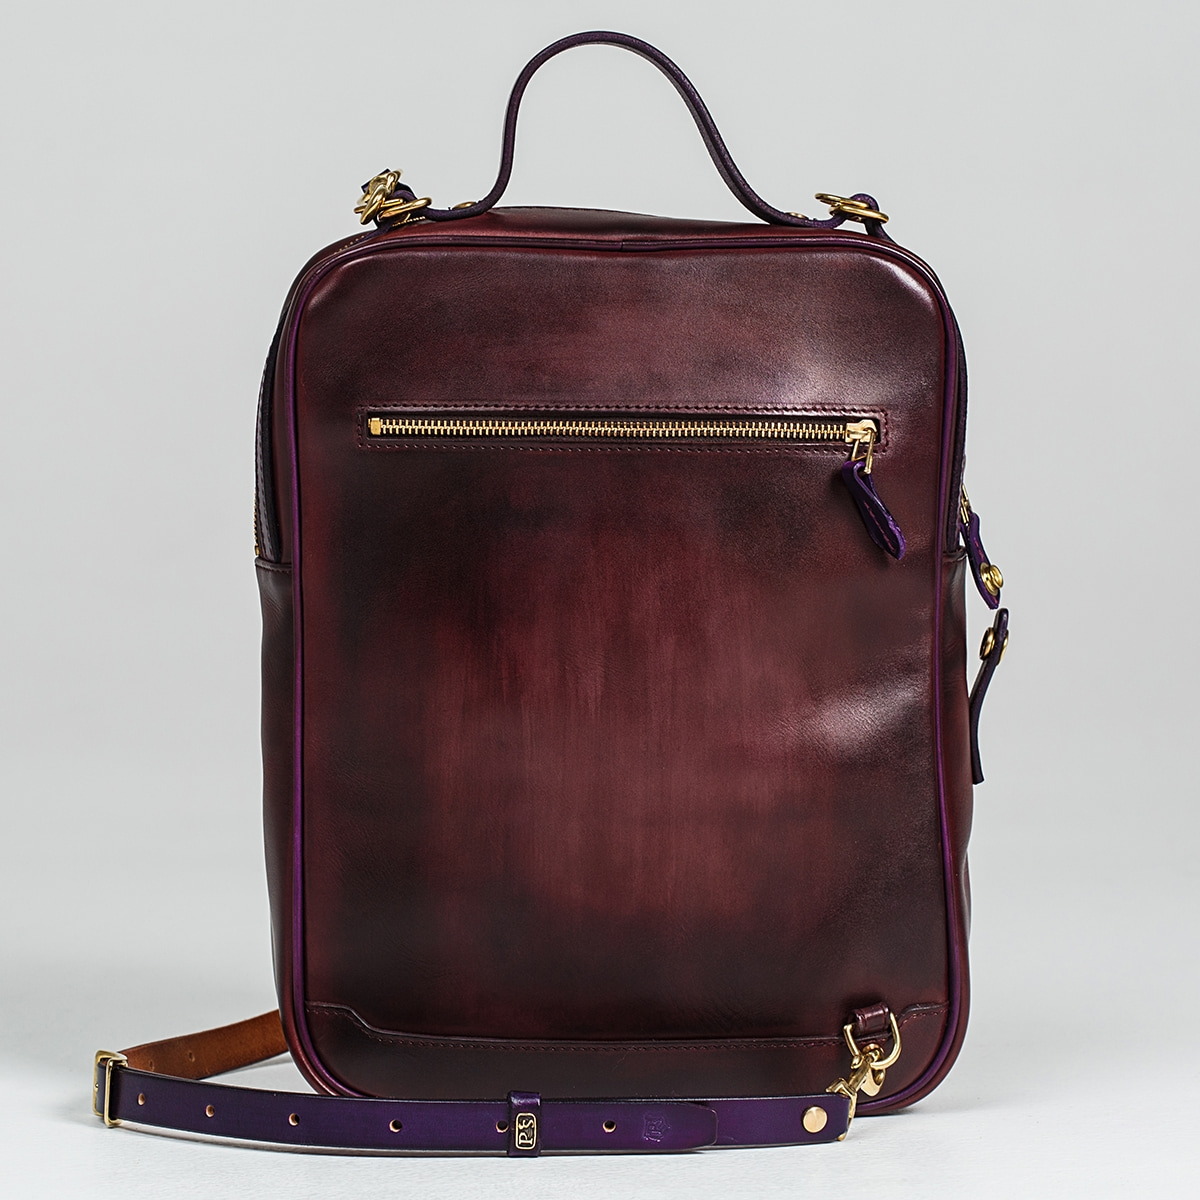 Crossbody bag-transformer CHELSEA violet ink & bordeaux